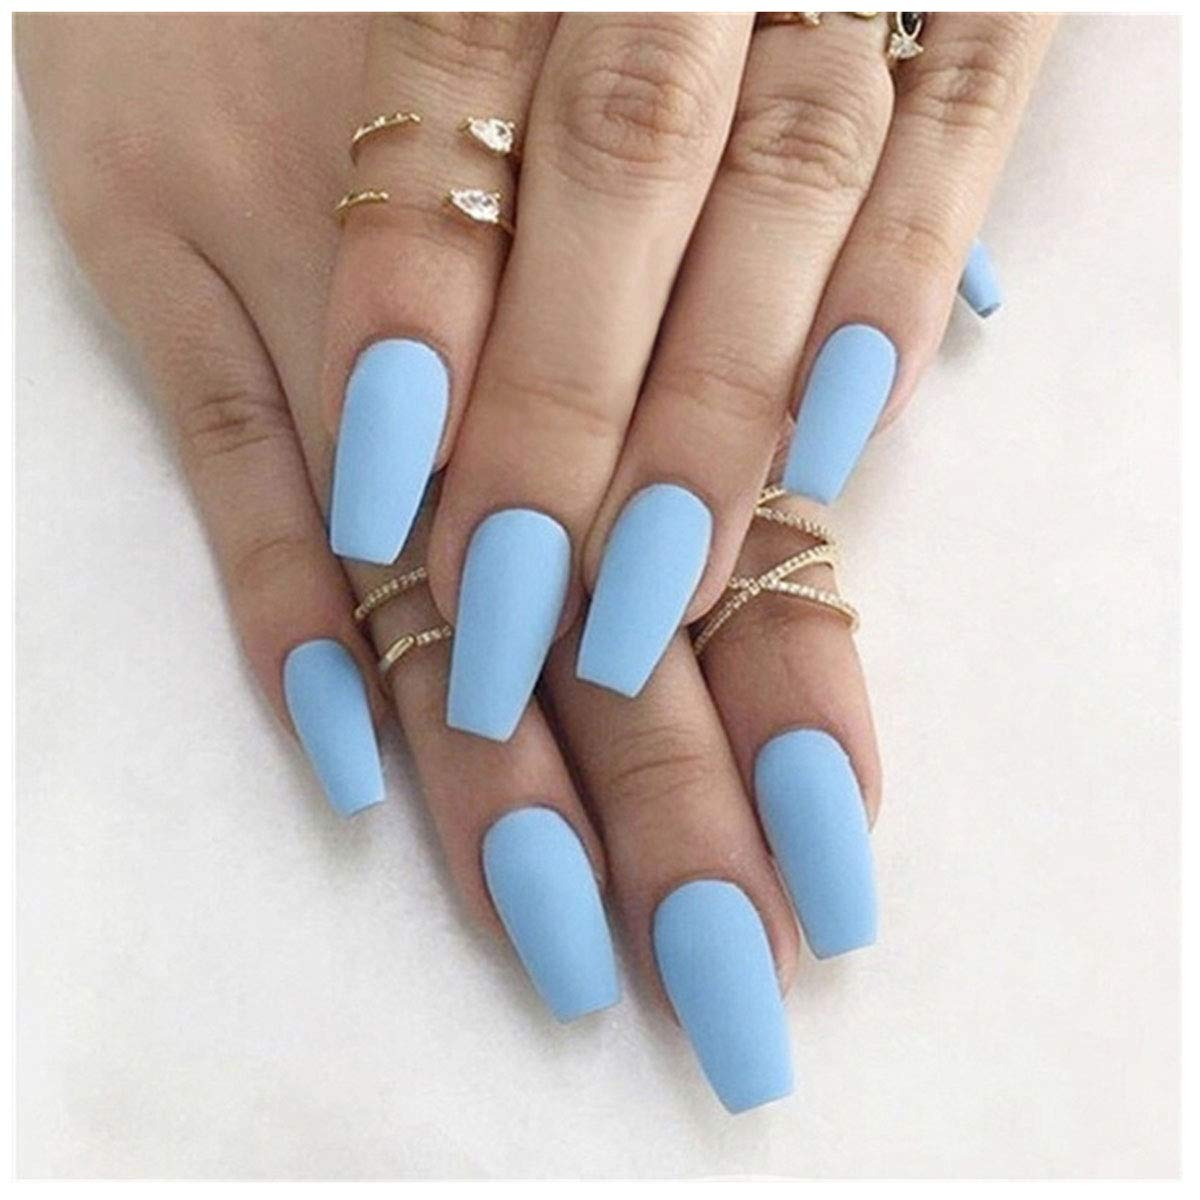 Frosted False Nails 24Pcs Pure Ballerina Coffin Fake Nails Fashion Acrylic Full Cover Press on Nails Art Tips for Women Girls Teens (Blue)